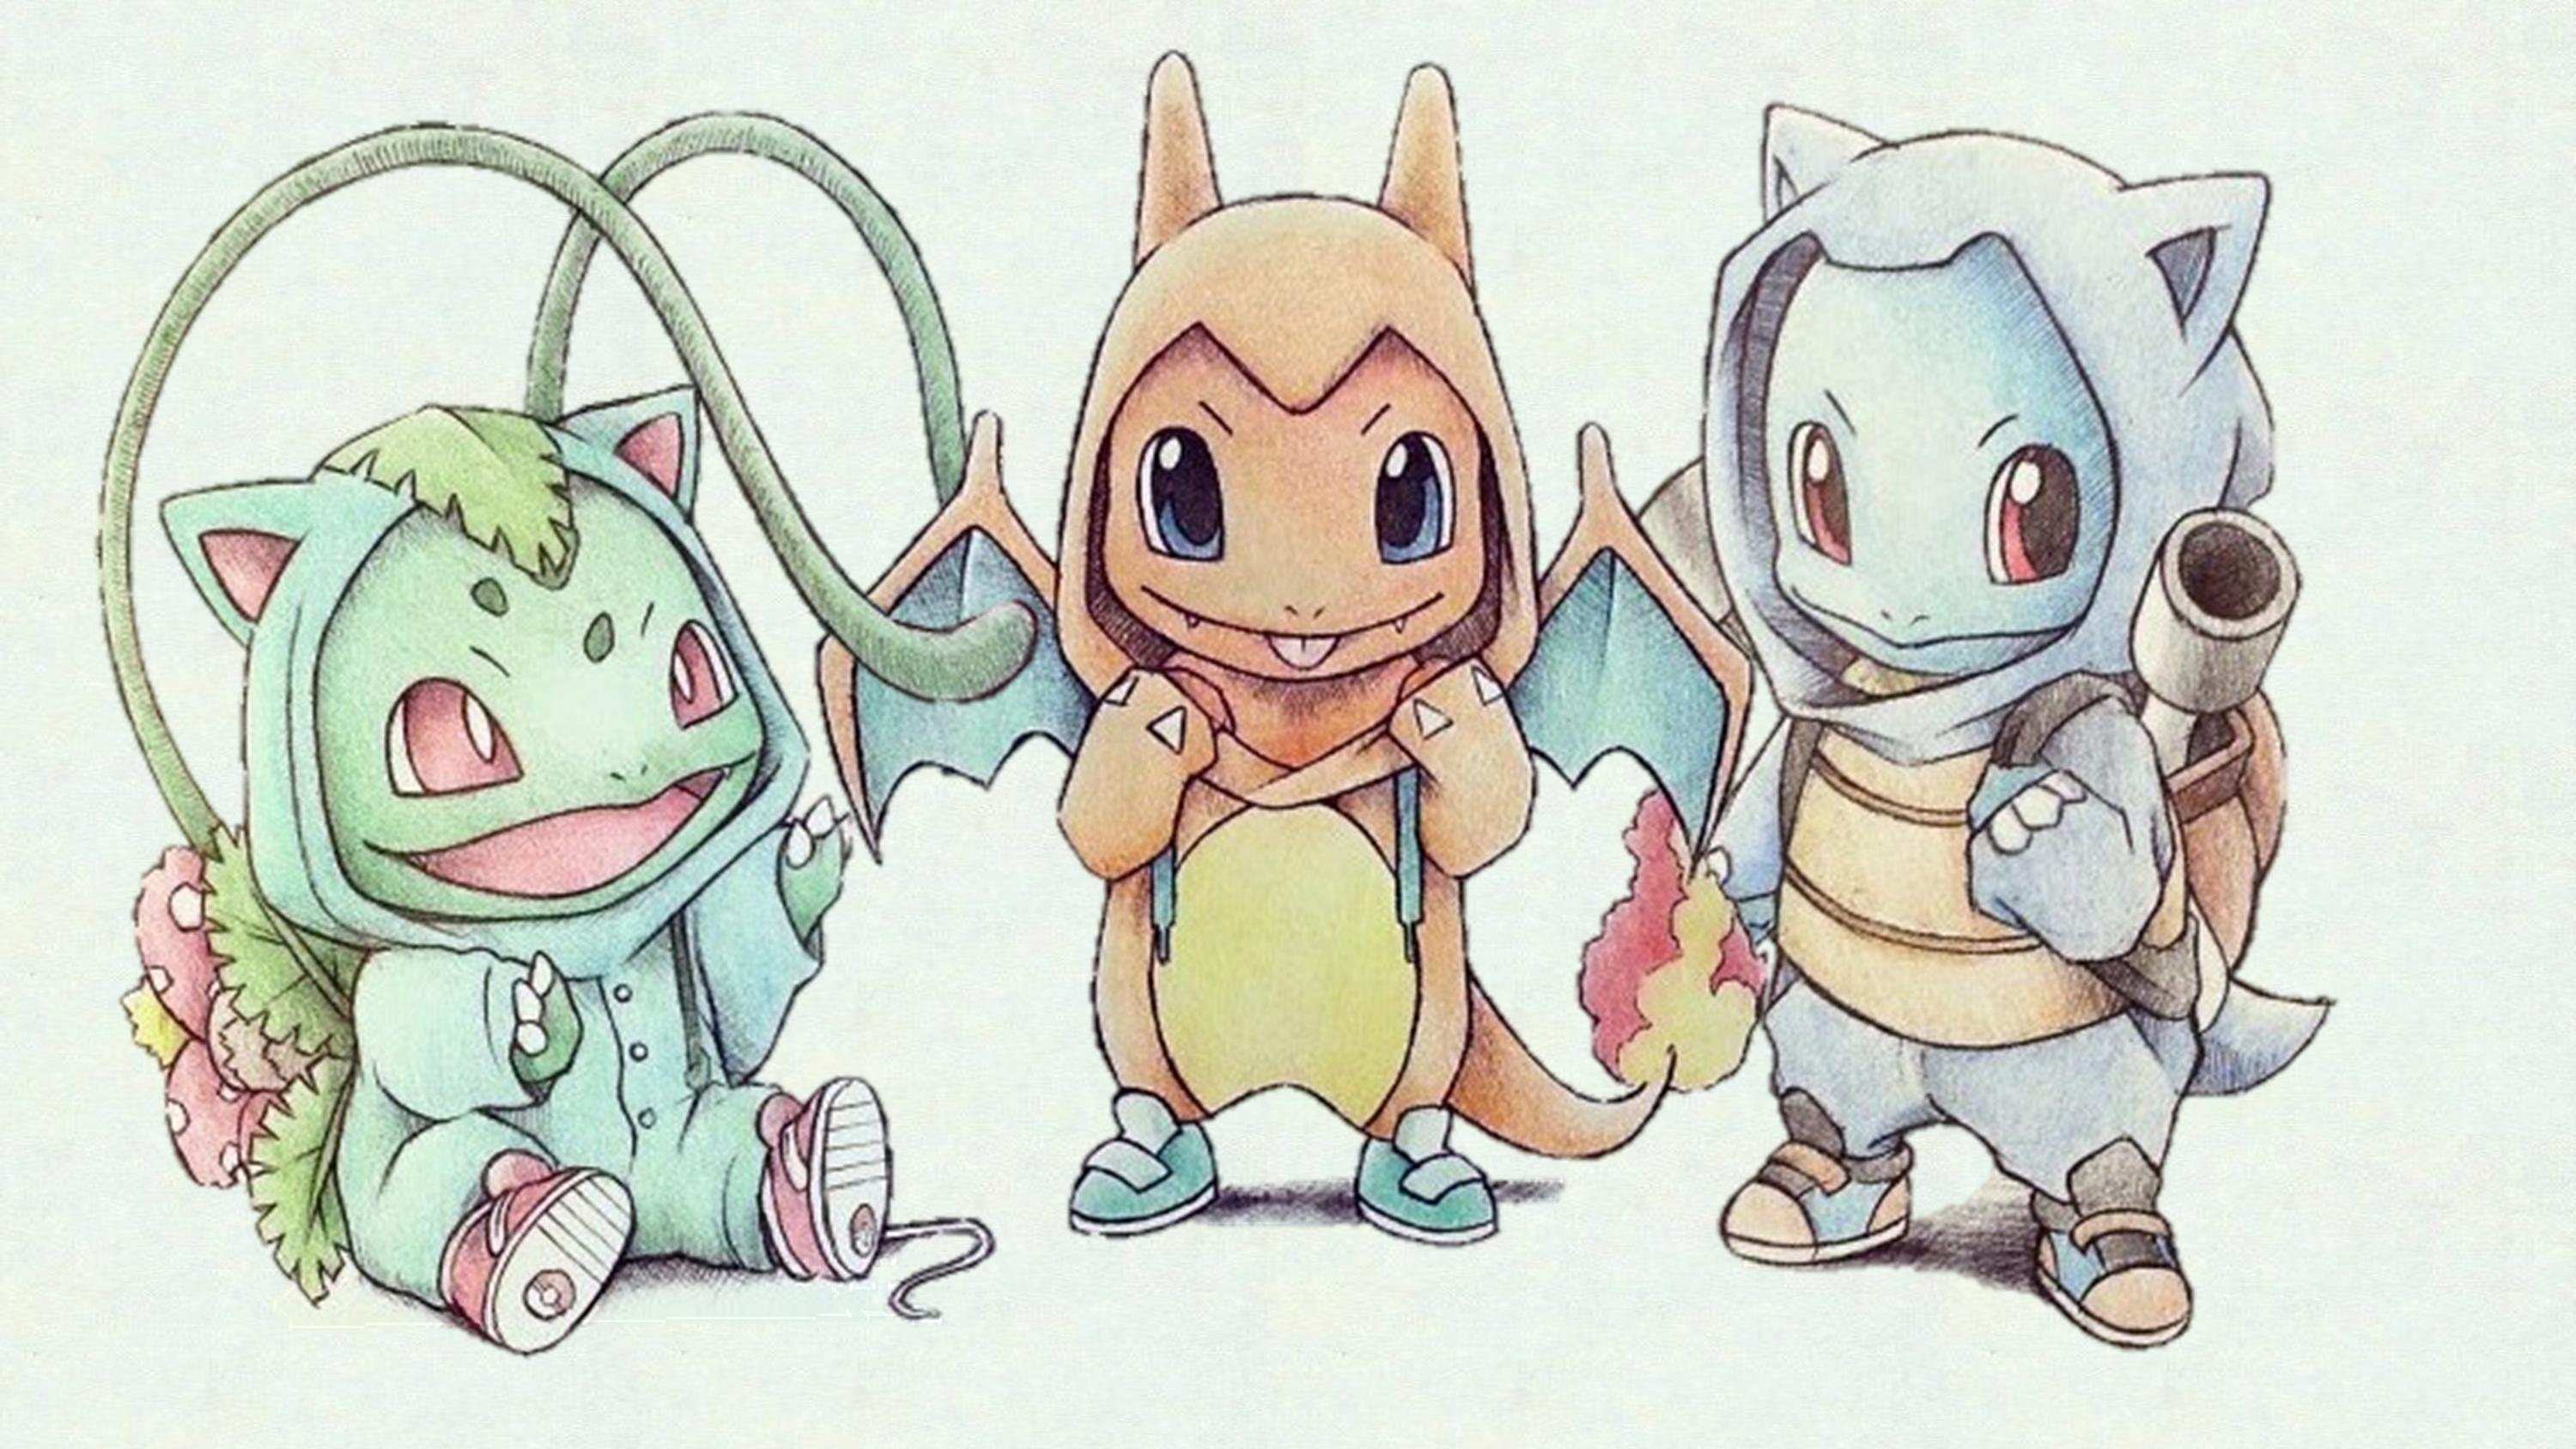 Drawn wallpaper cute Wallpaper Pokemon Pokemon Wallpaper Wallpaper